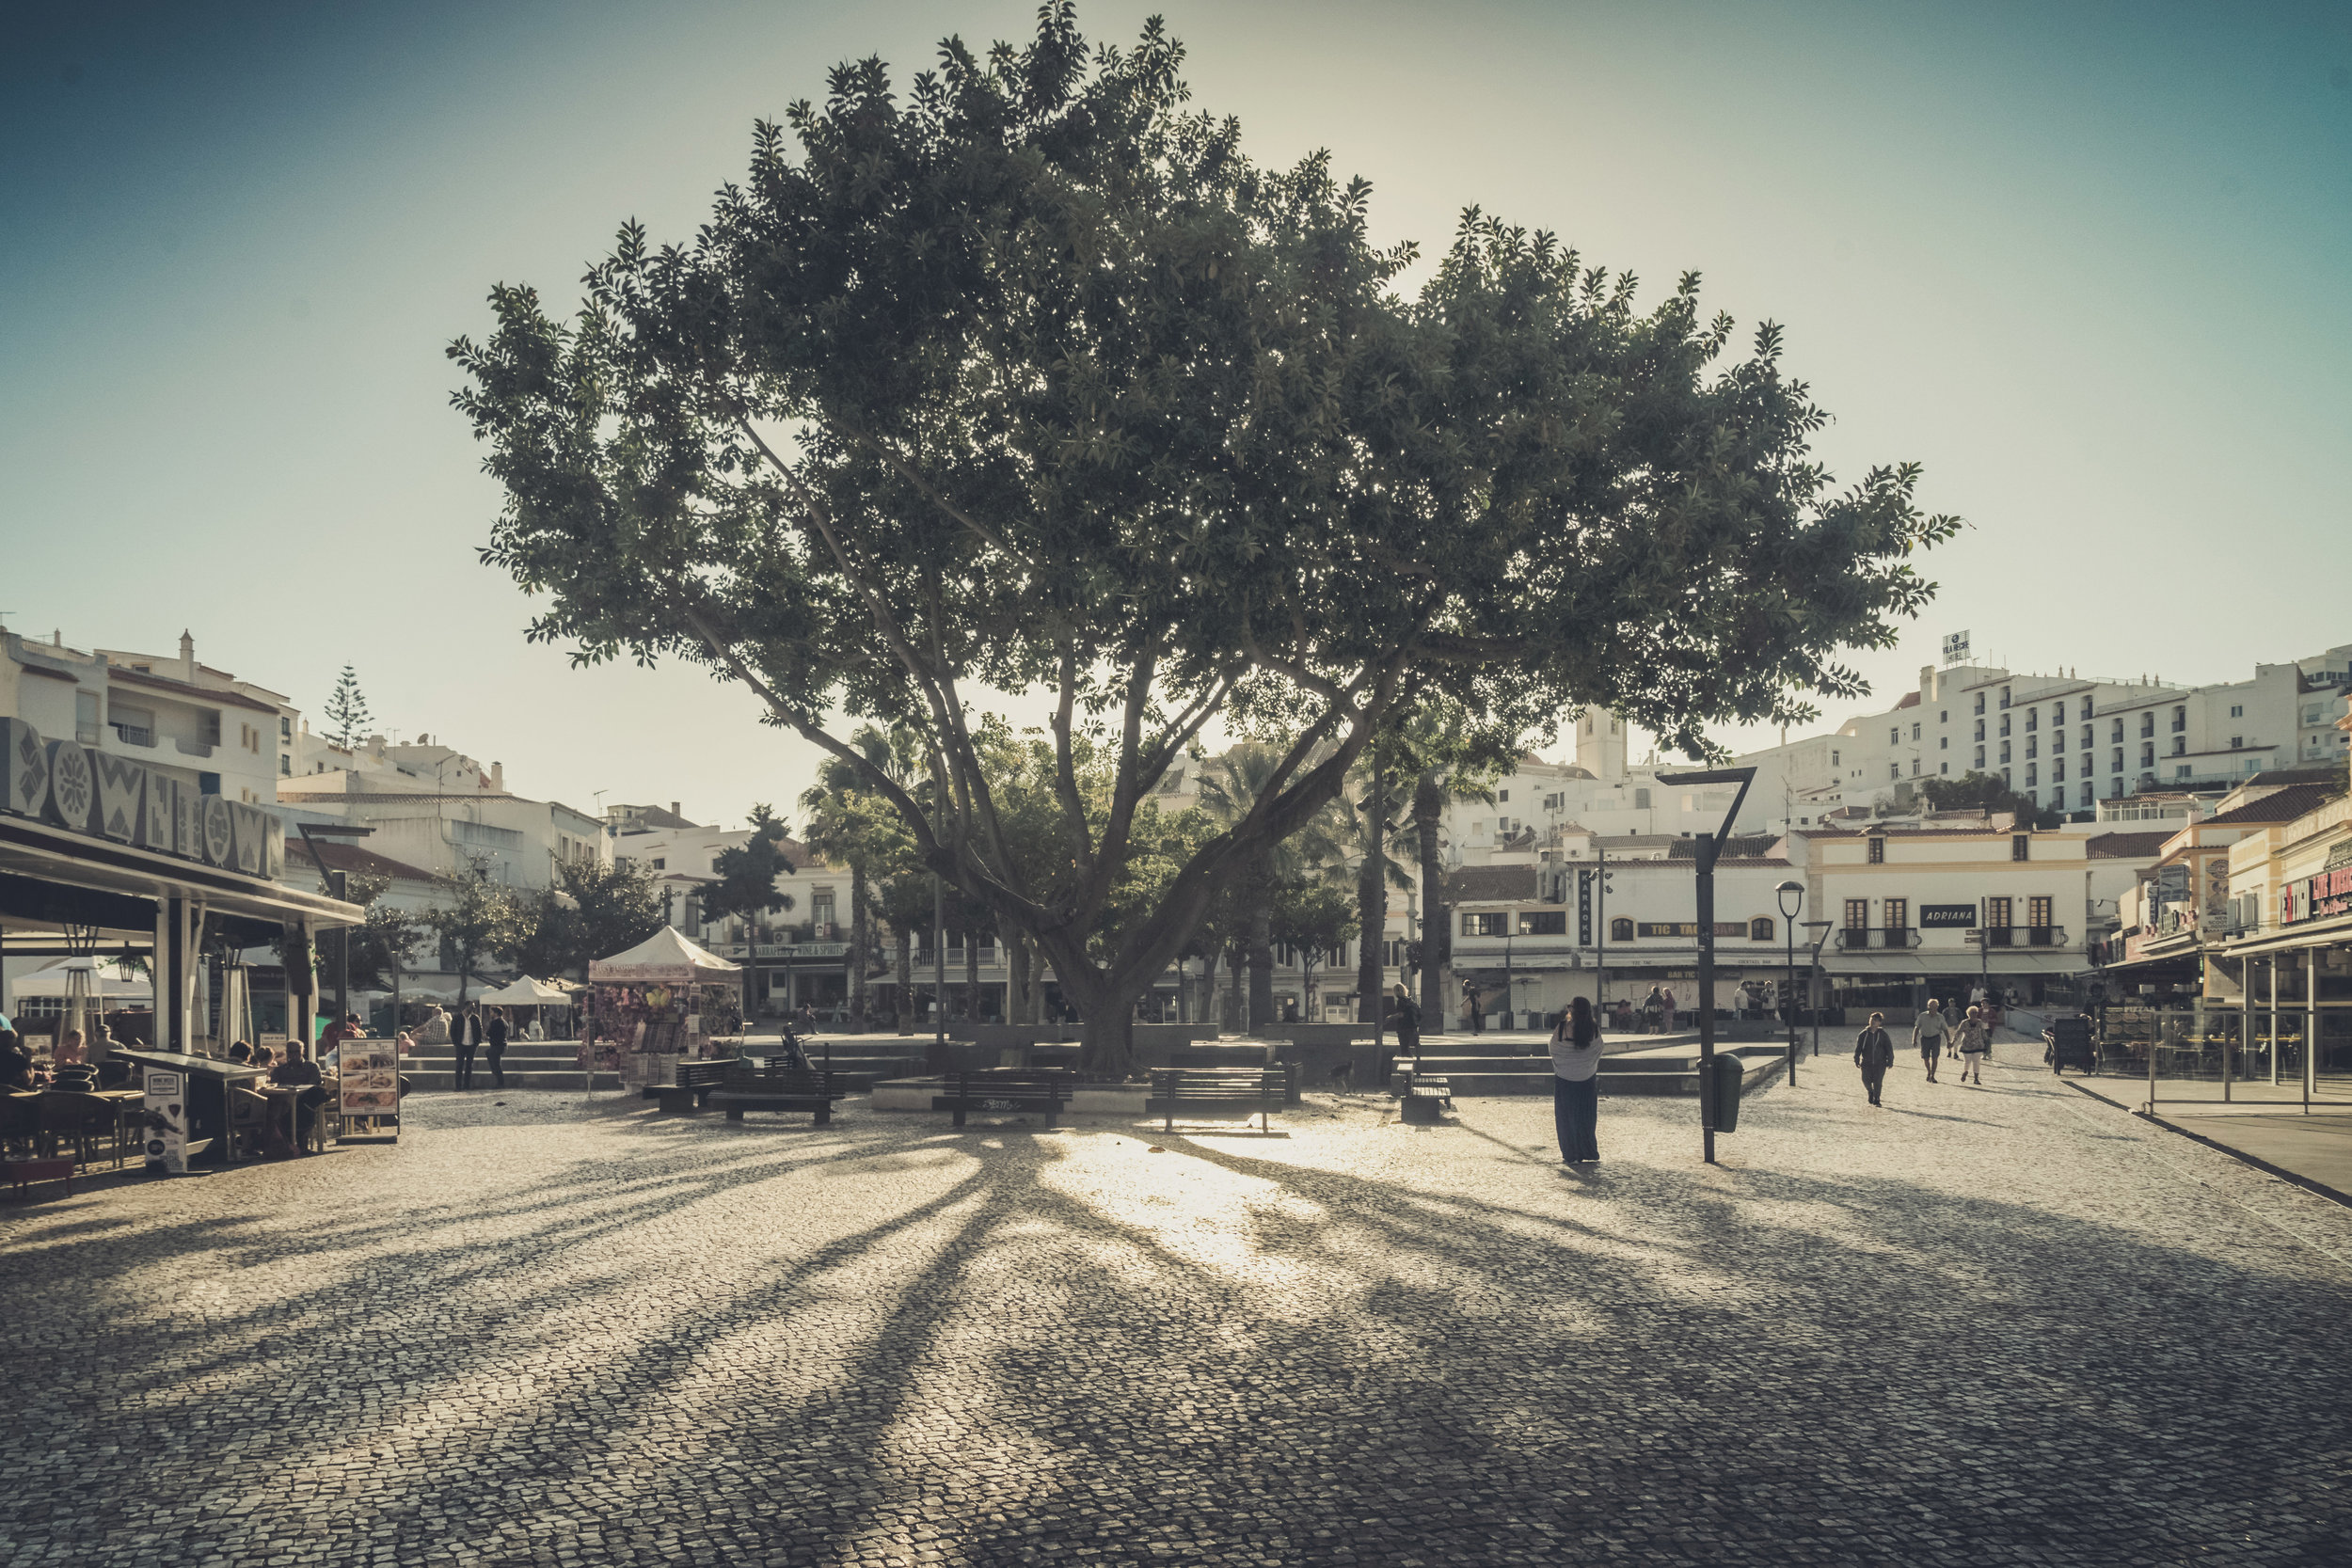 albufeira town center. big tree in the middle of albufeira. old albufeira..jpg